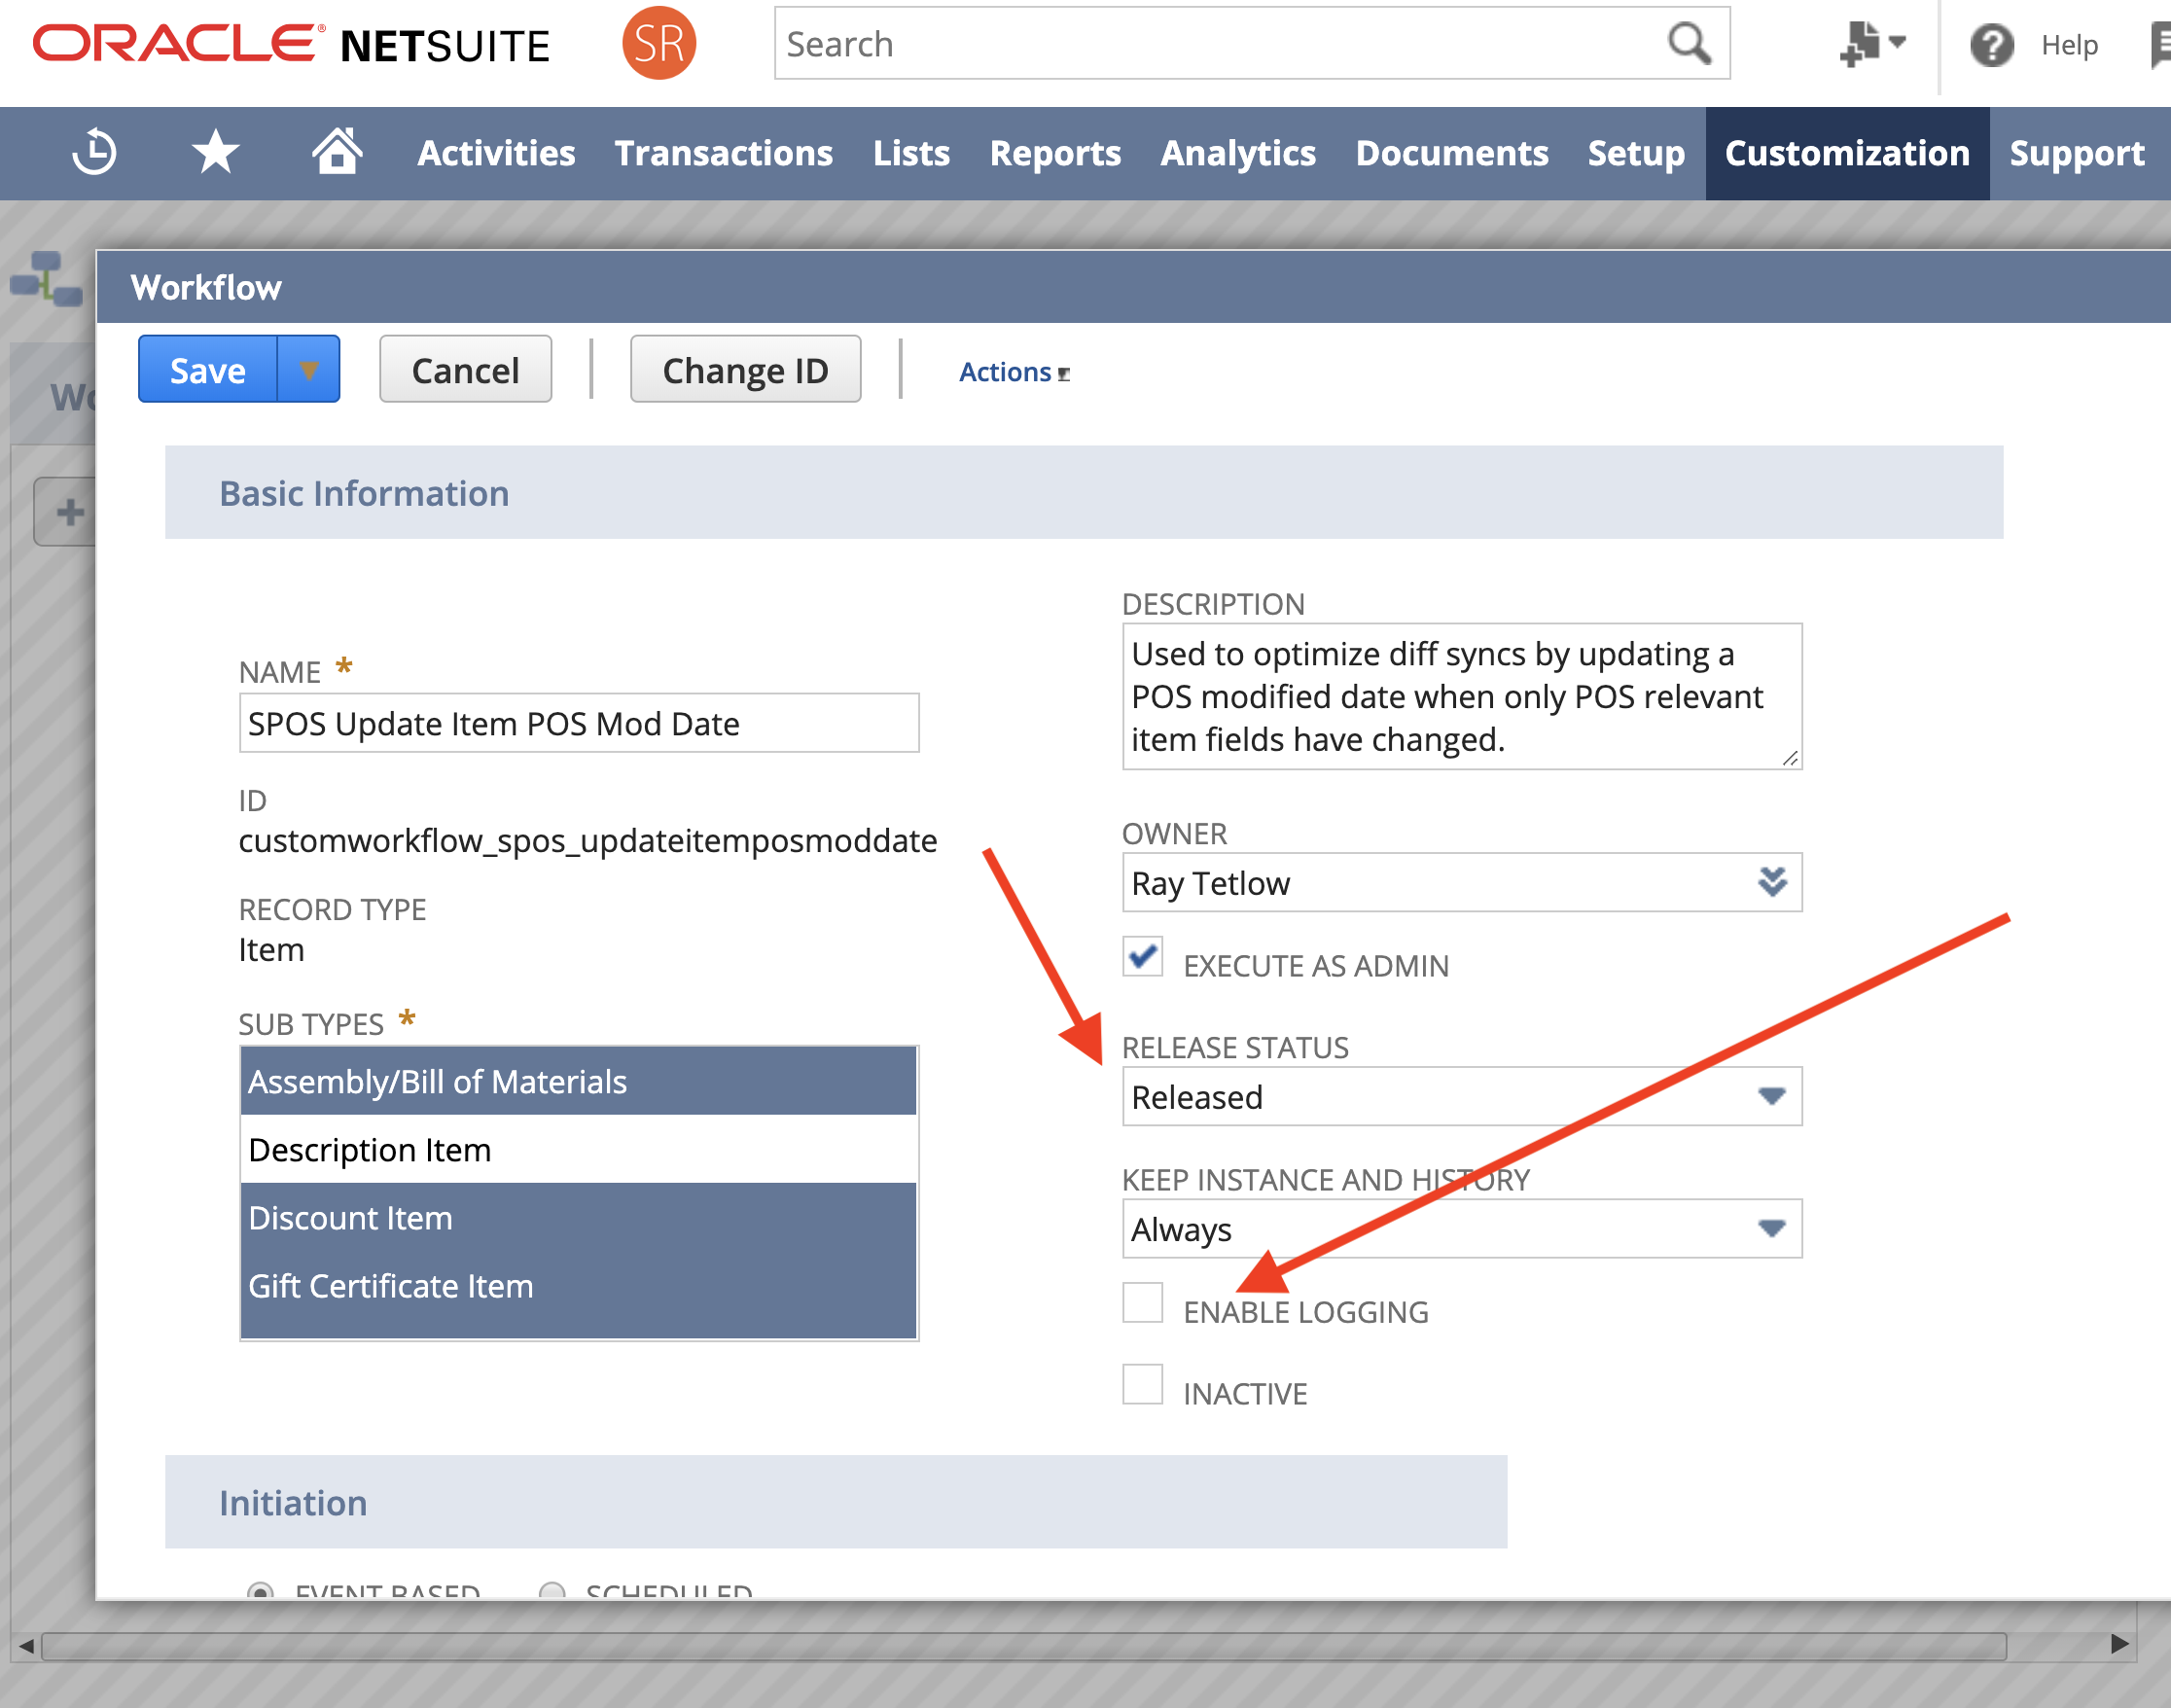 Tutorial: Activating/Deactivating Optimize Diff  Syncs  in NetSuite